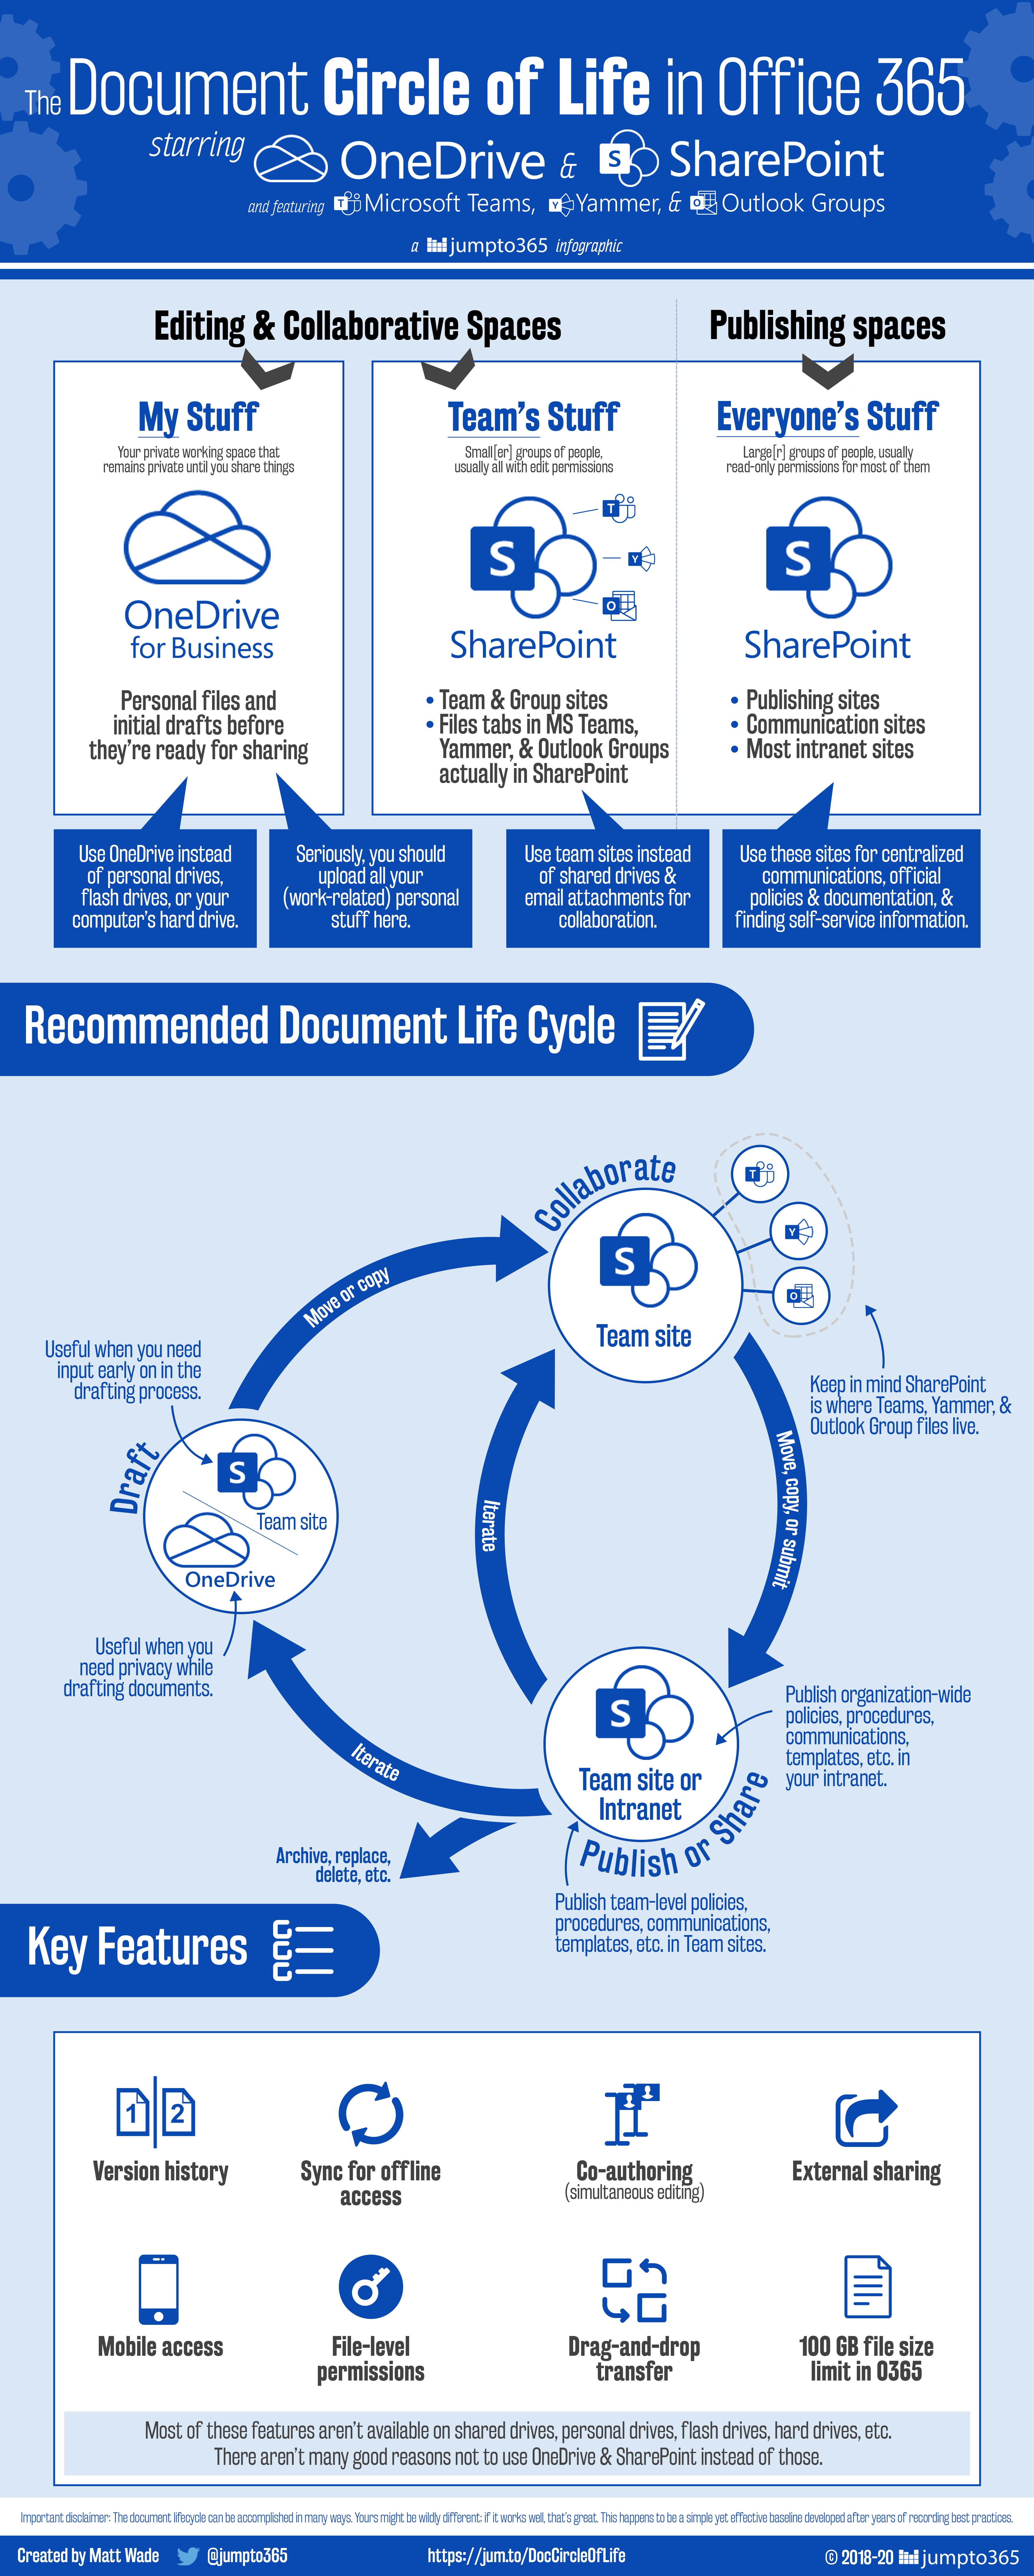 The Document Circle of Life in Office 365   jumpto365 Blog